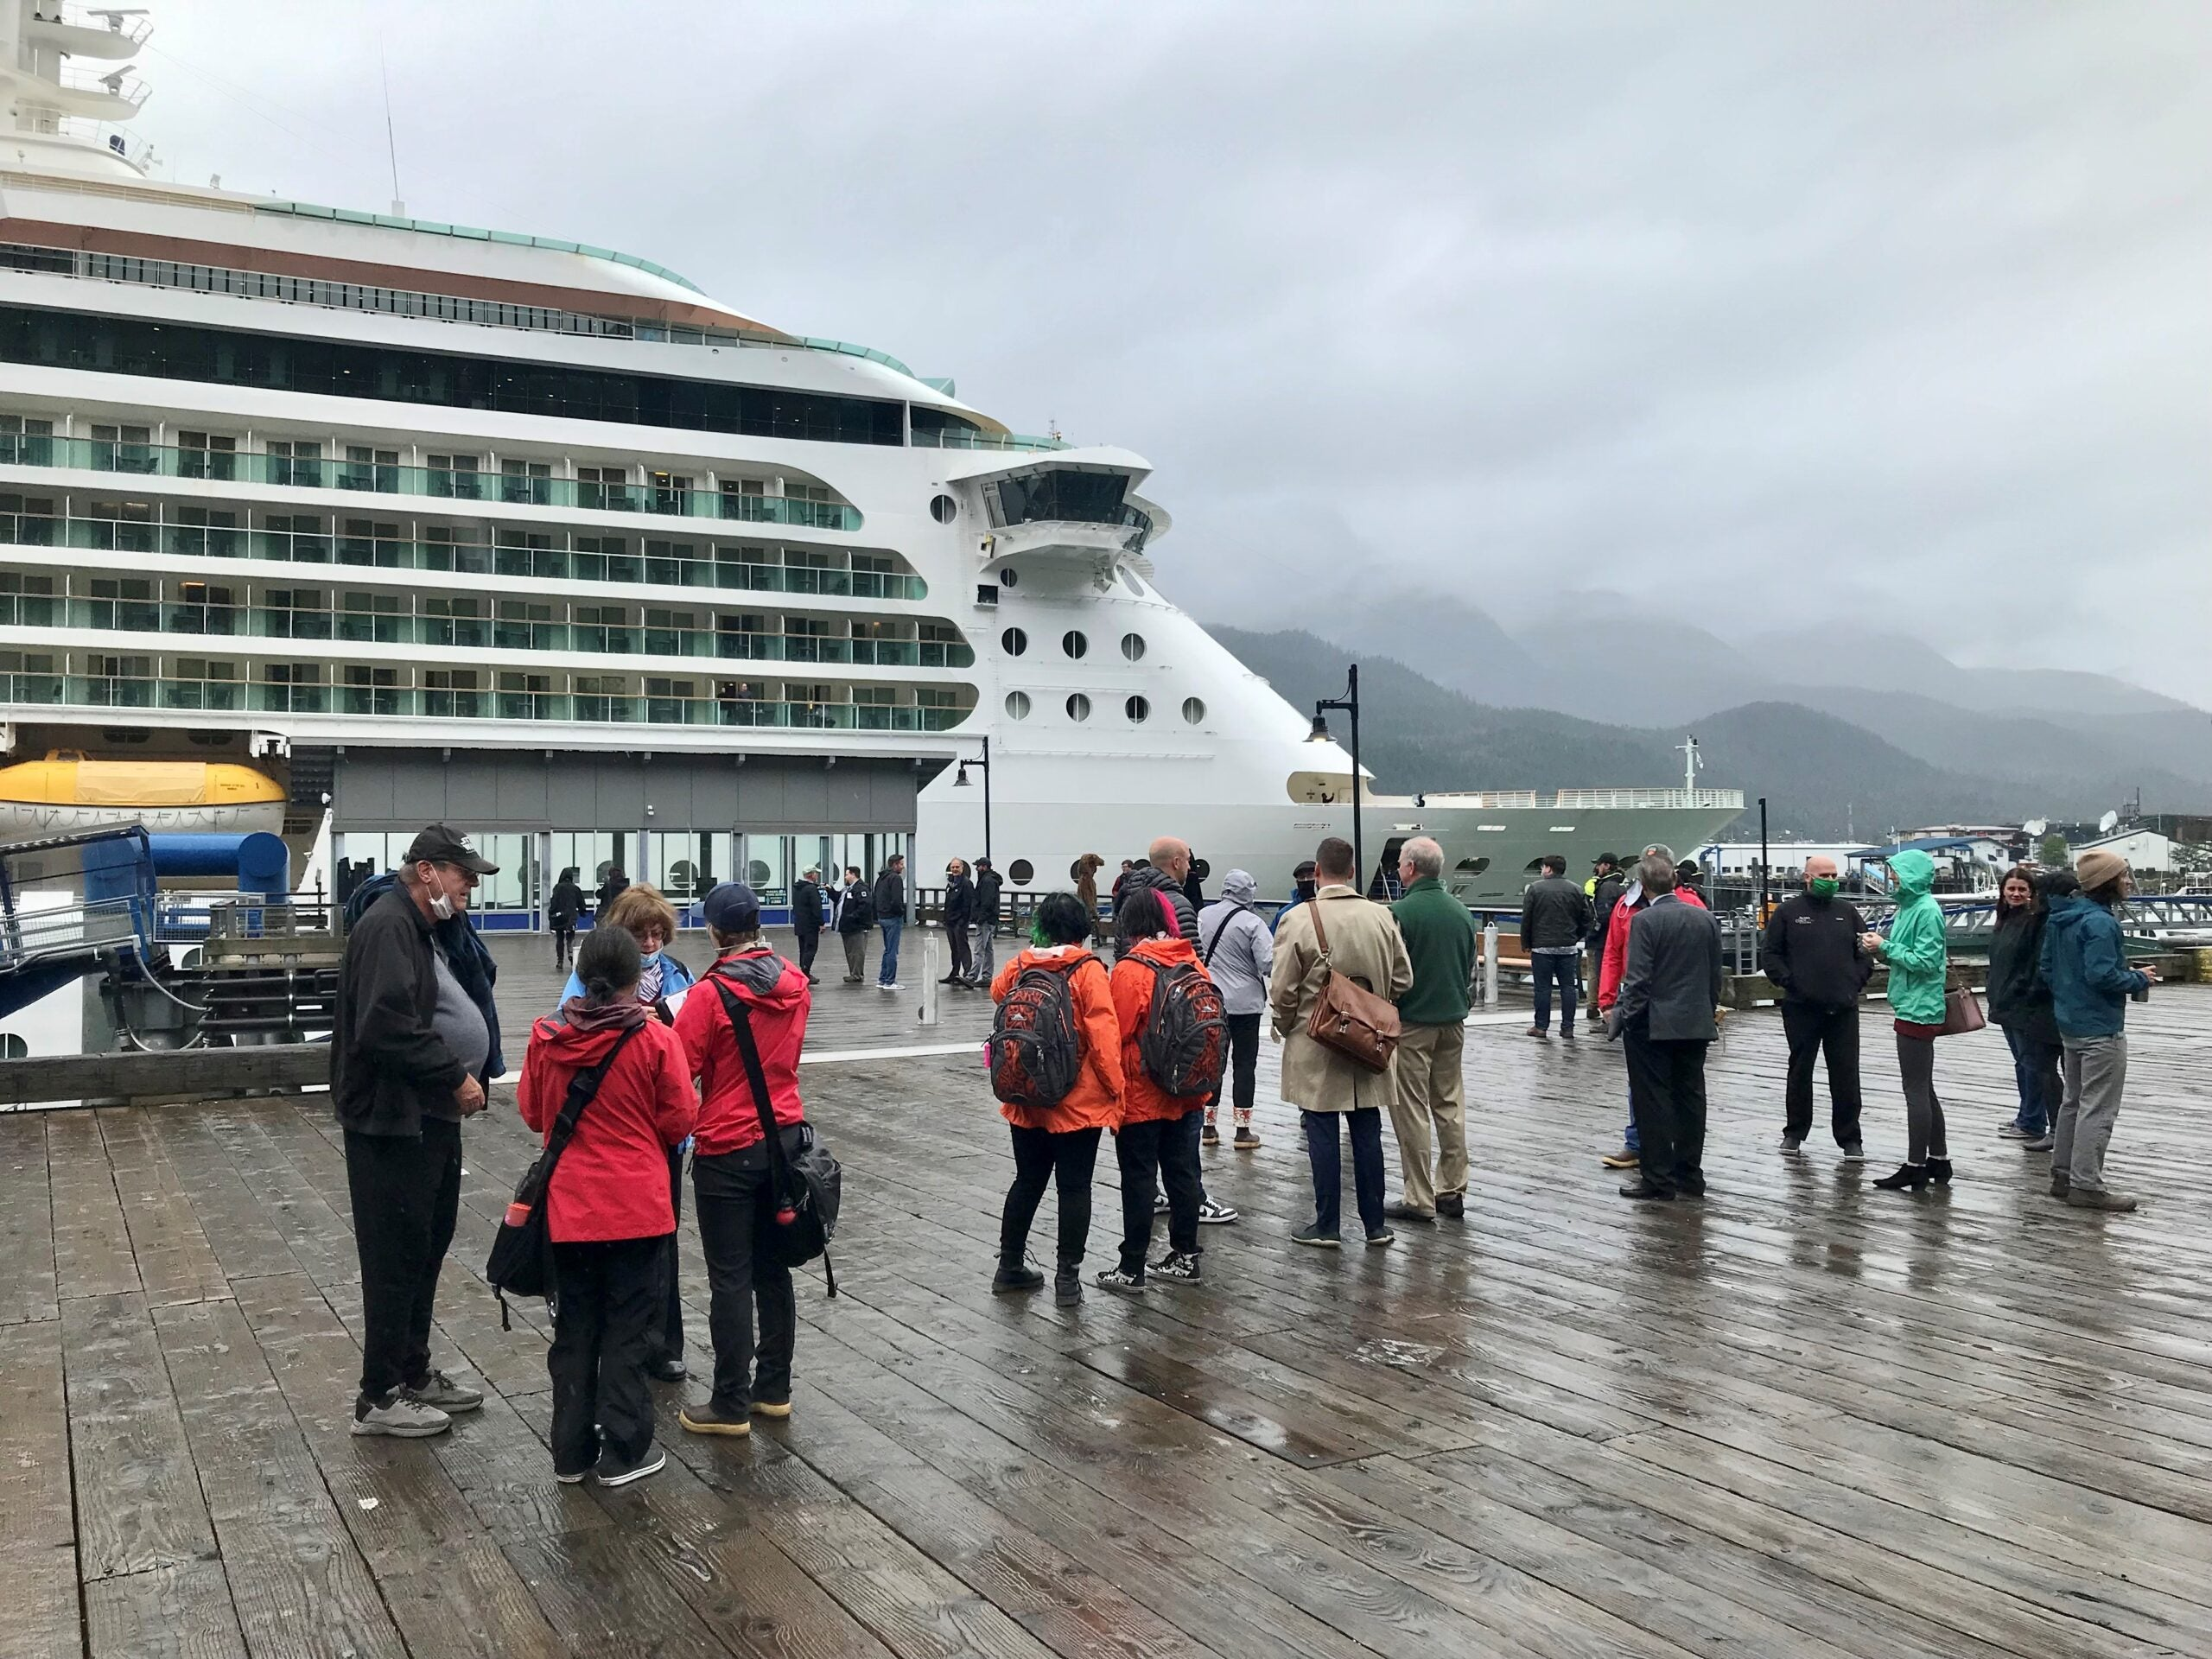 Why visiting Alaska's busiest cruise port, Juneau, is a bit surreal right now